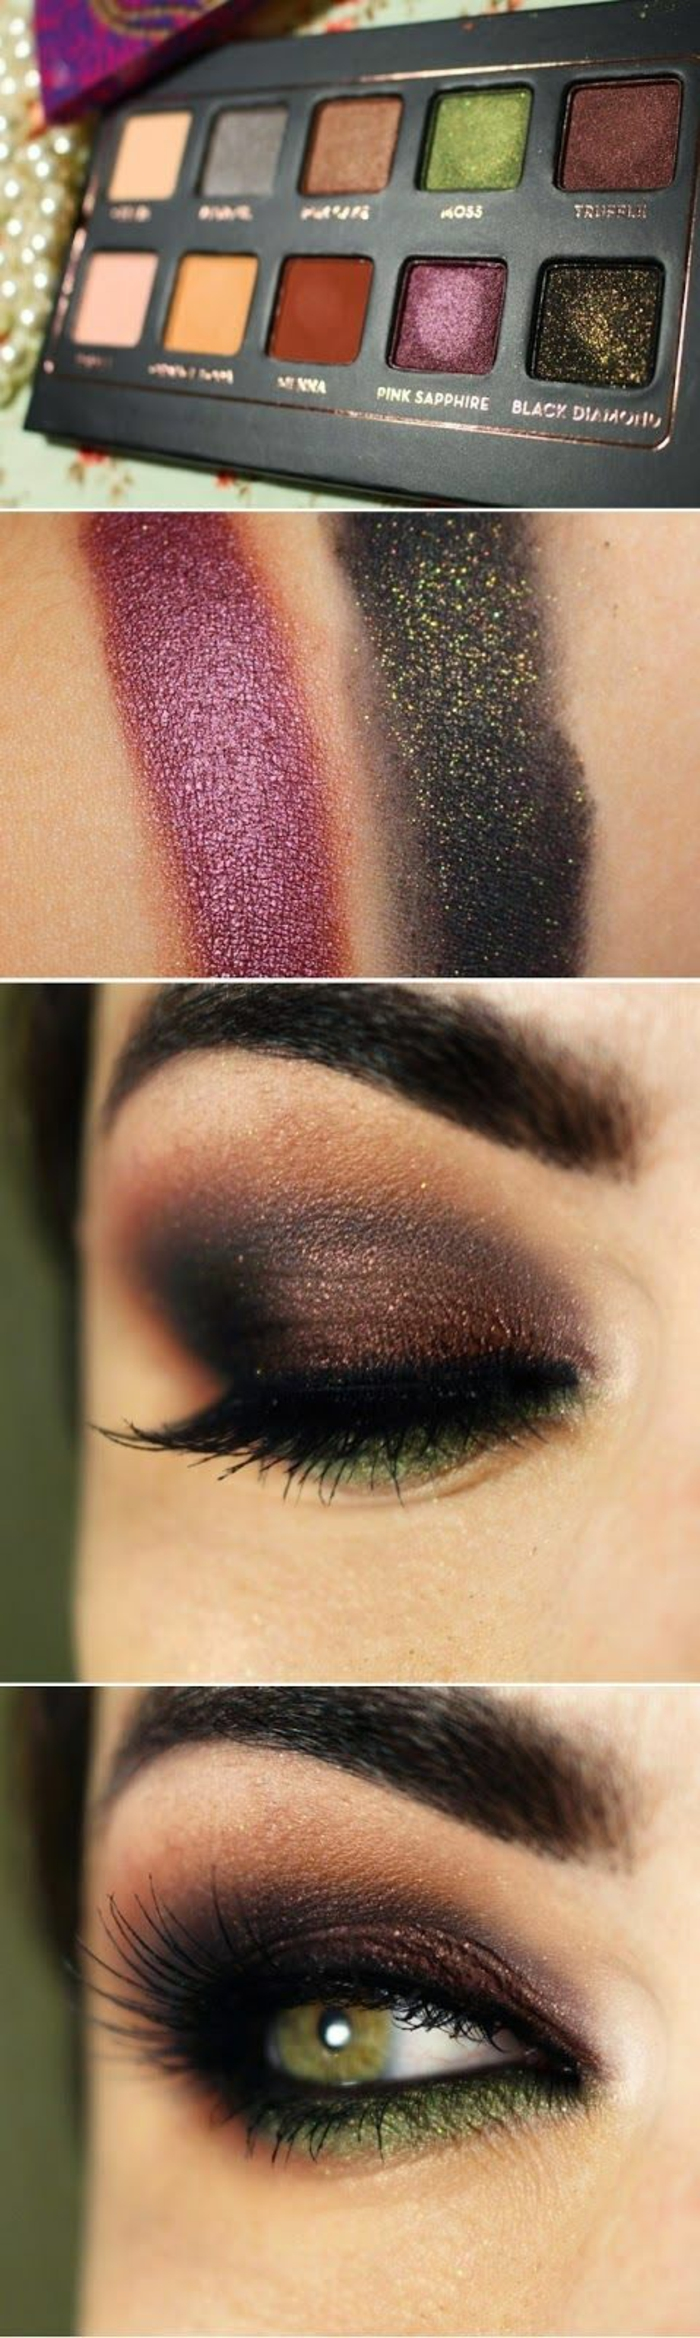 Make-to-eyes-green-makeup-the-eyes-green-black-eyeliner-how-how-to-oneself-resized